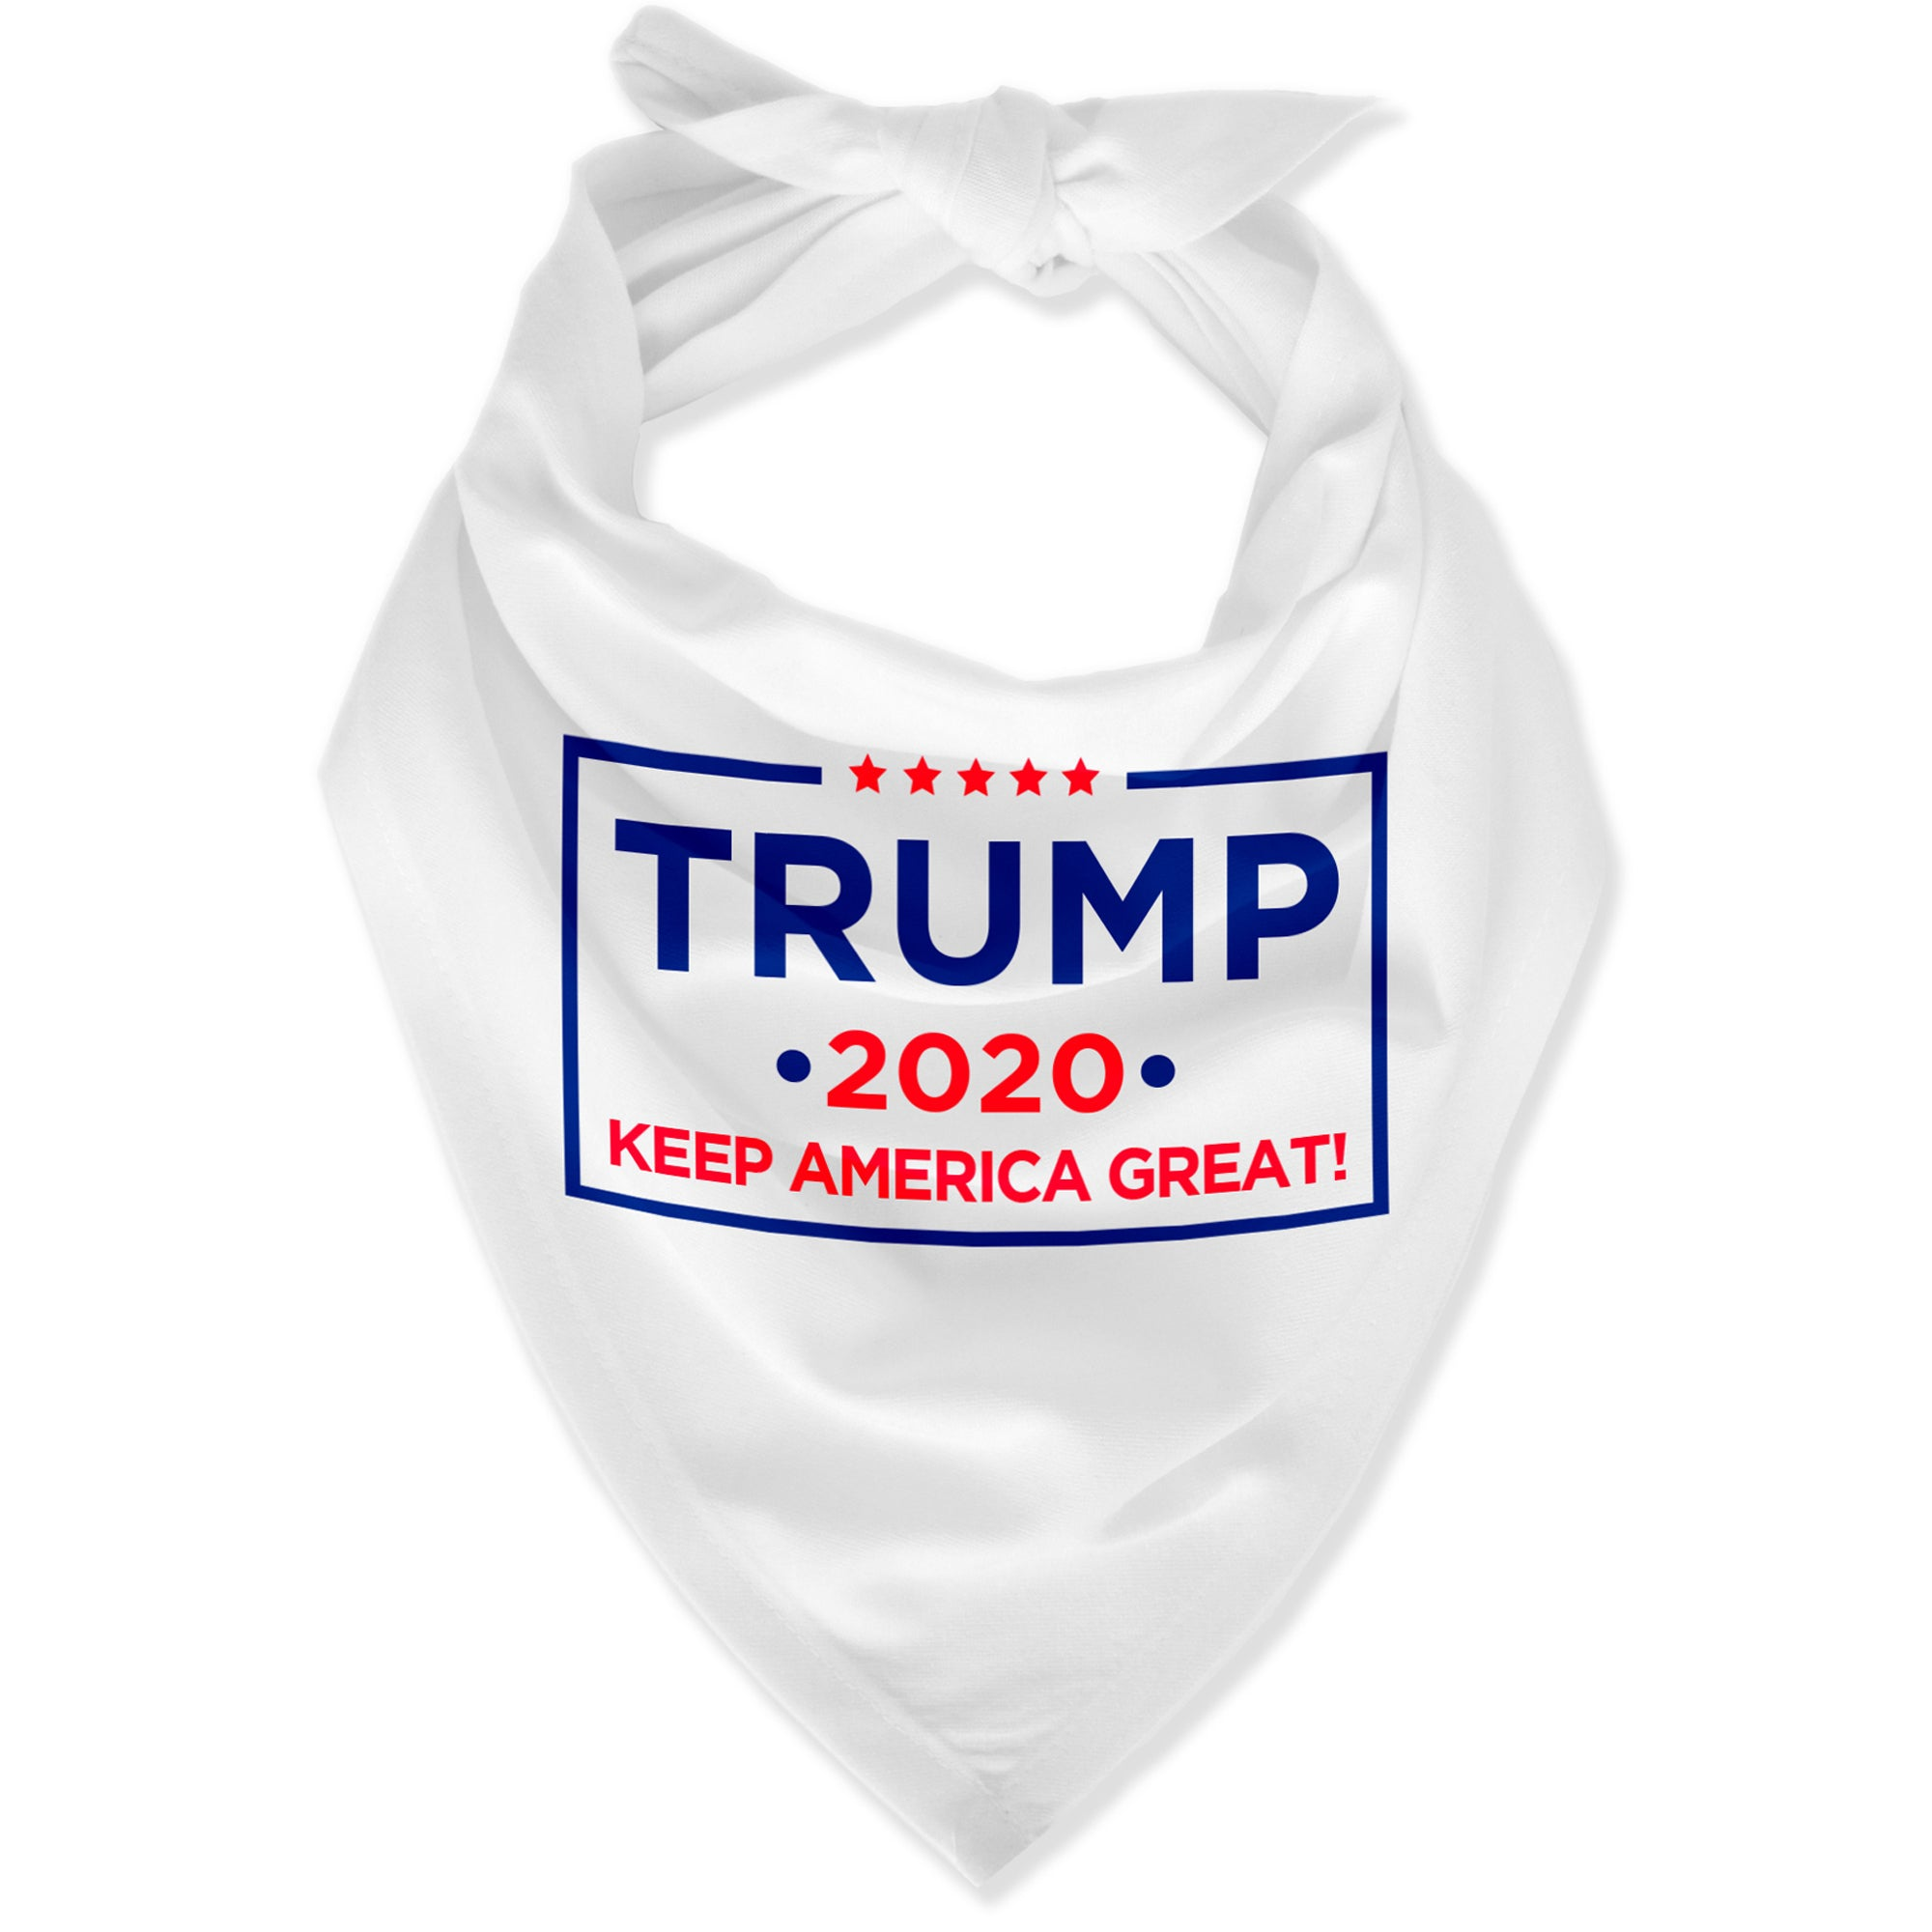 Trump Dog Bandana Sale